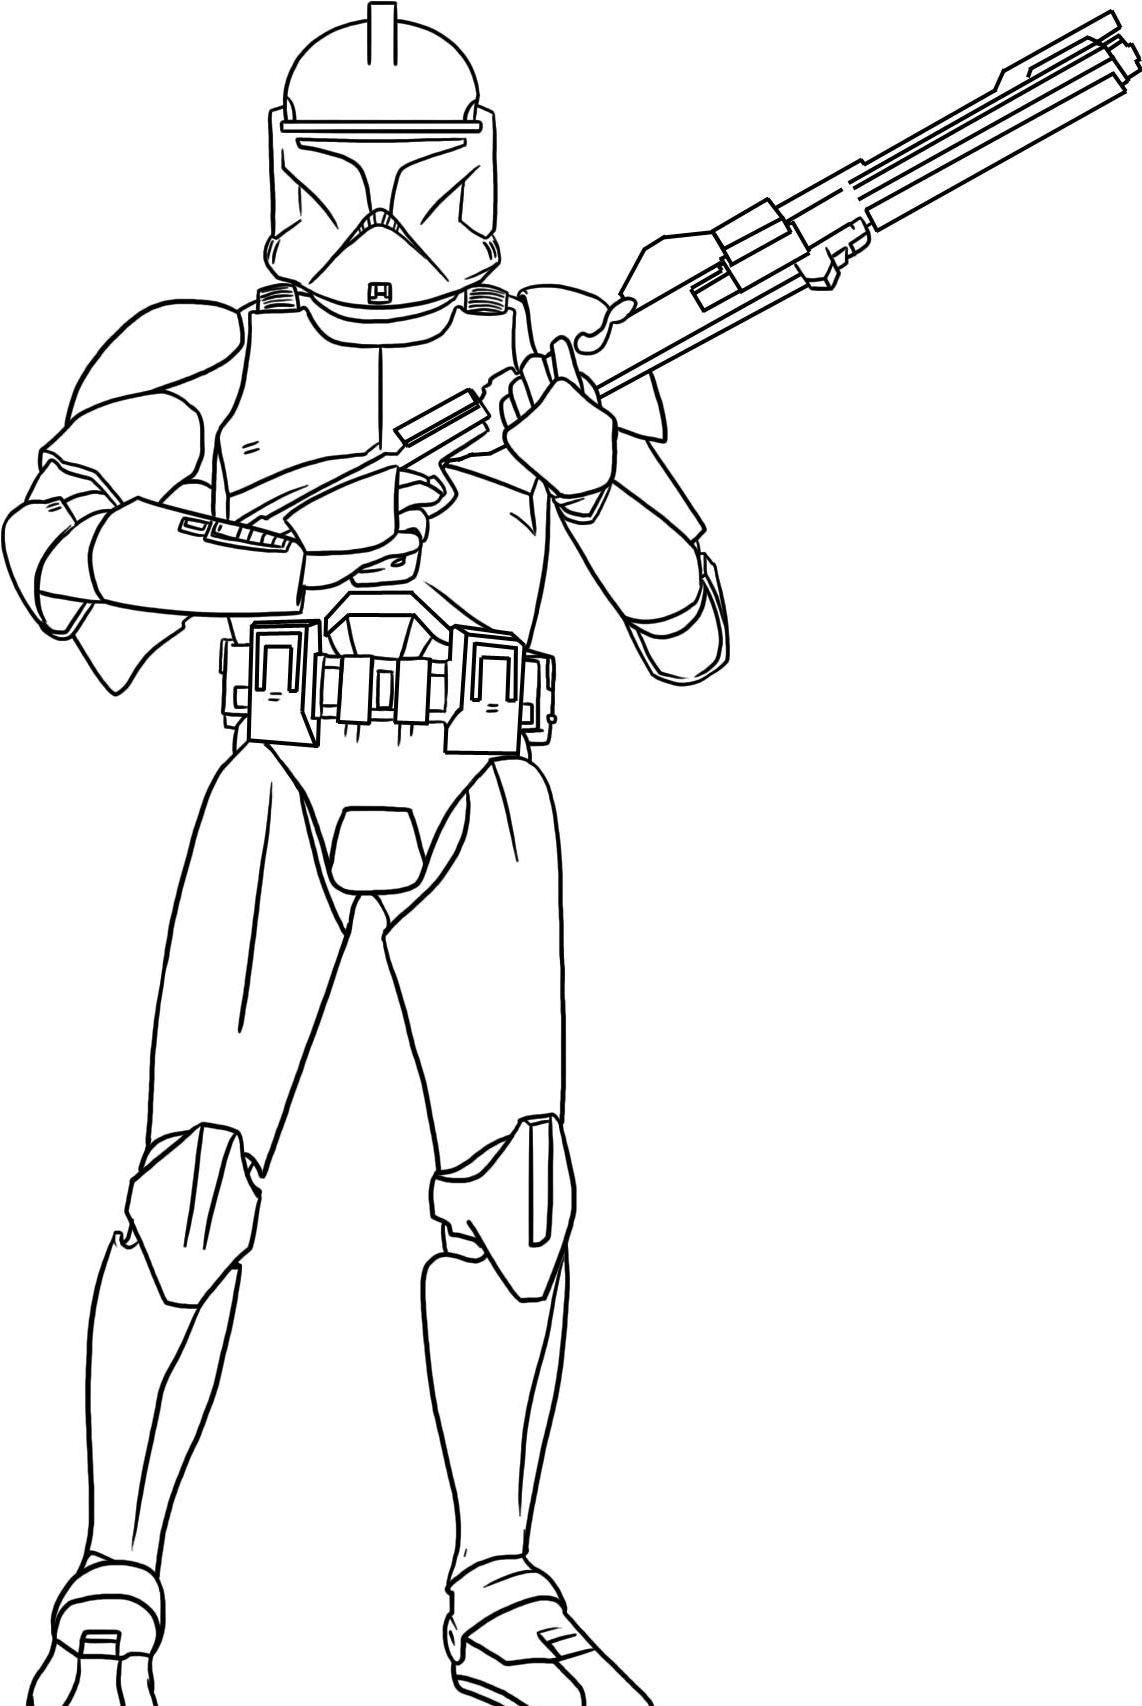 One Of The Soldiers Star Wars Coloring Pages Colorir Riscos